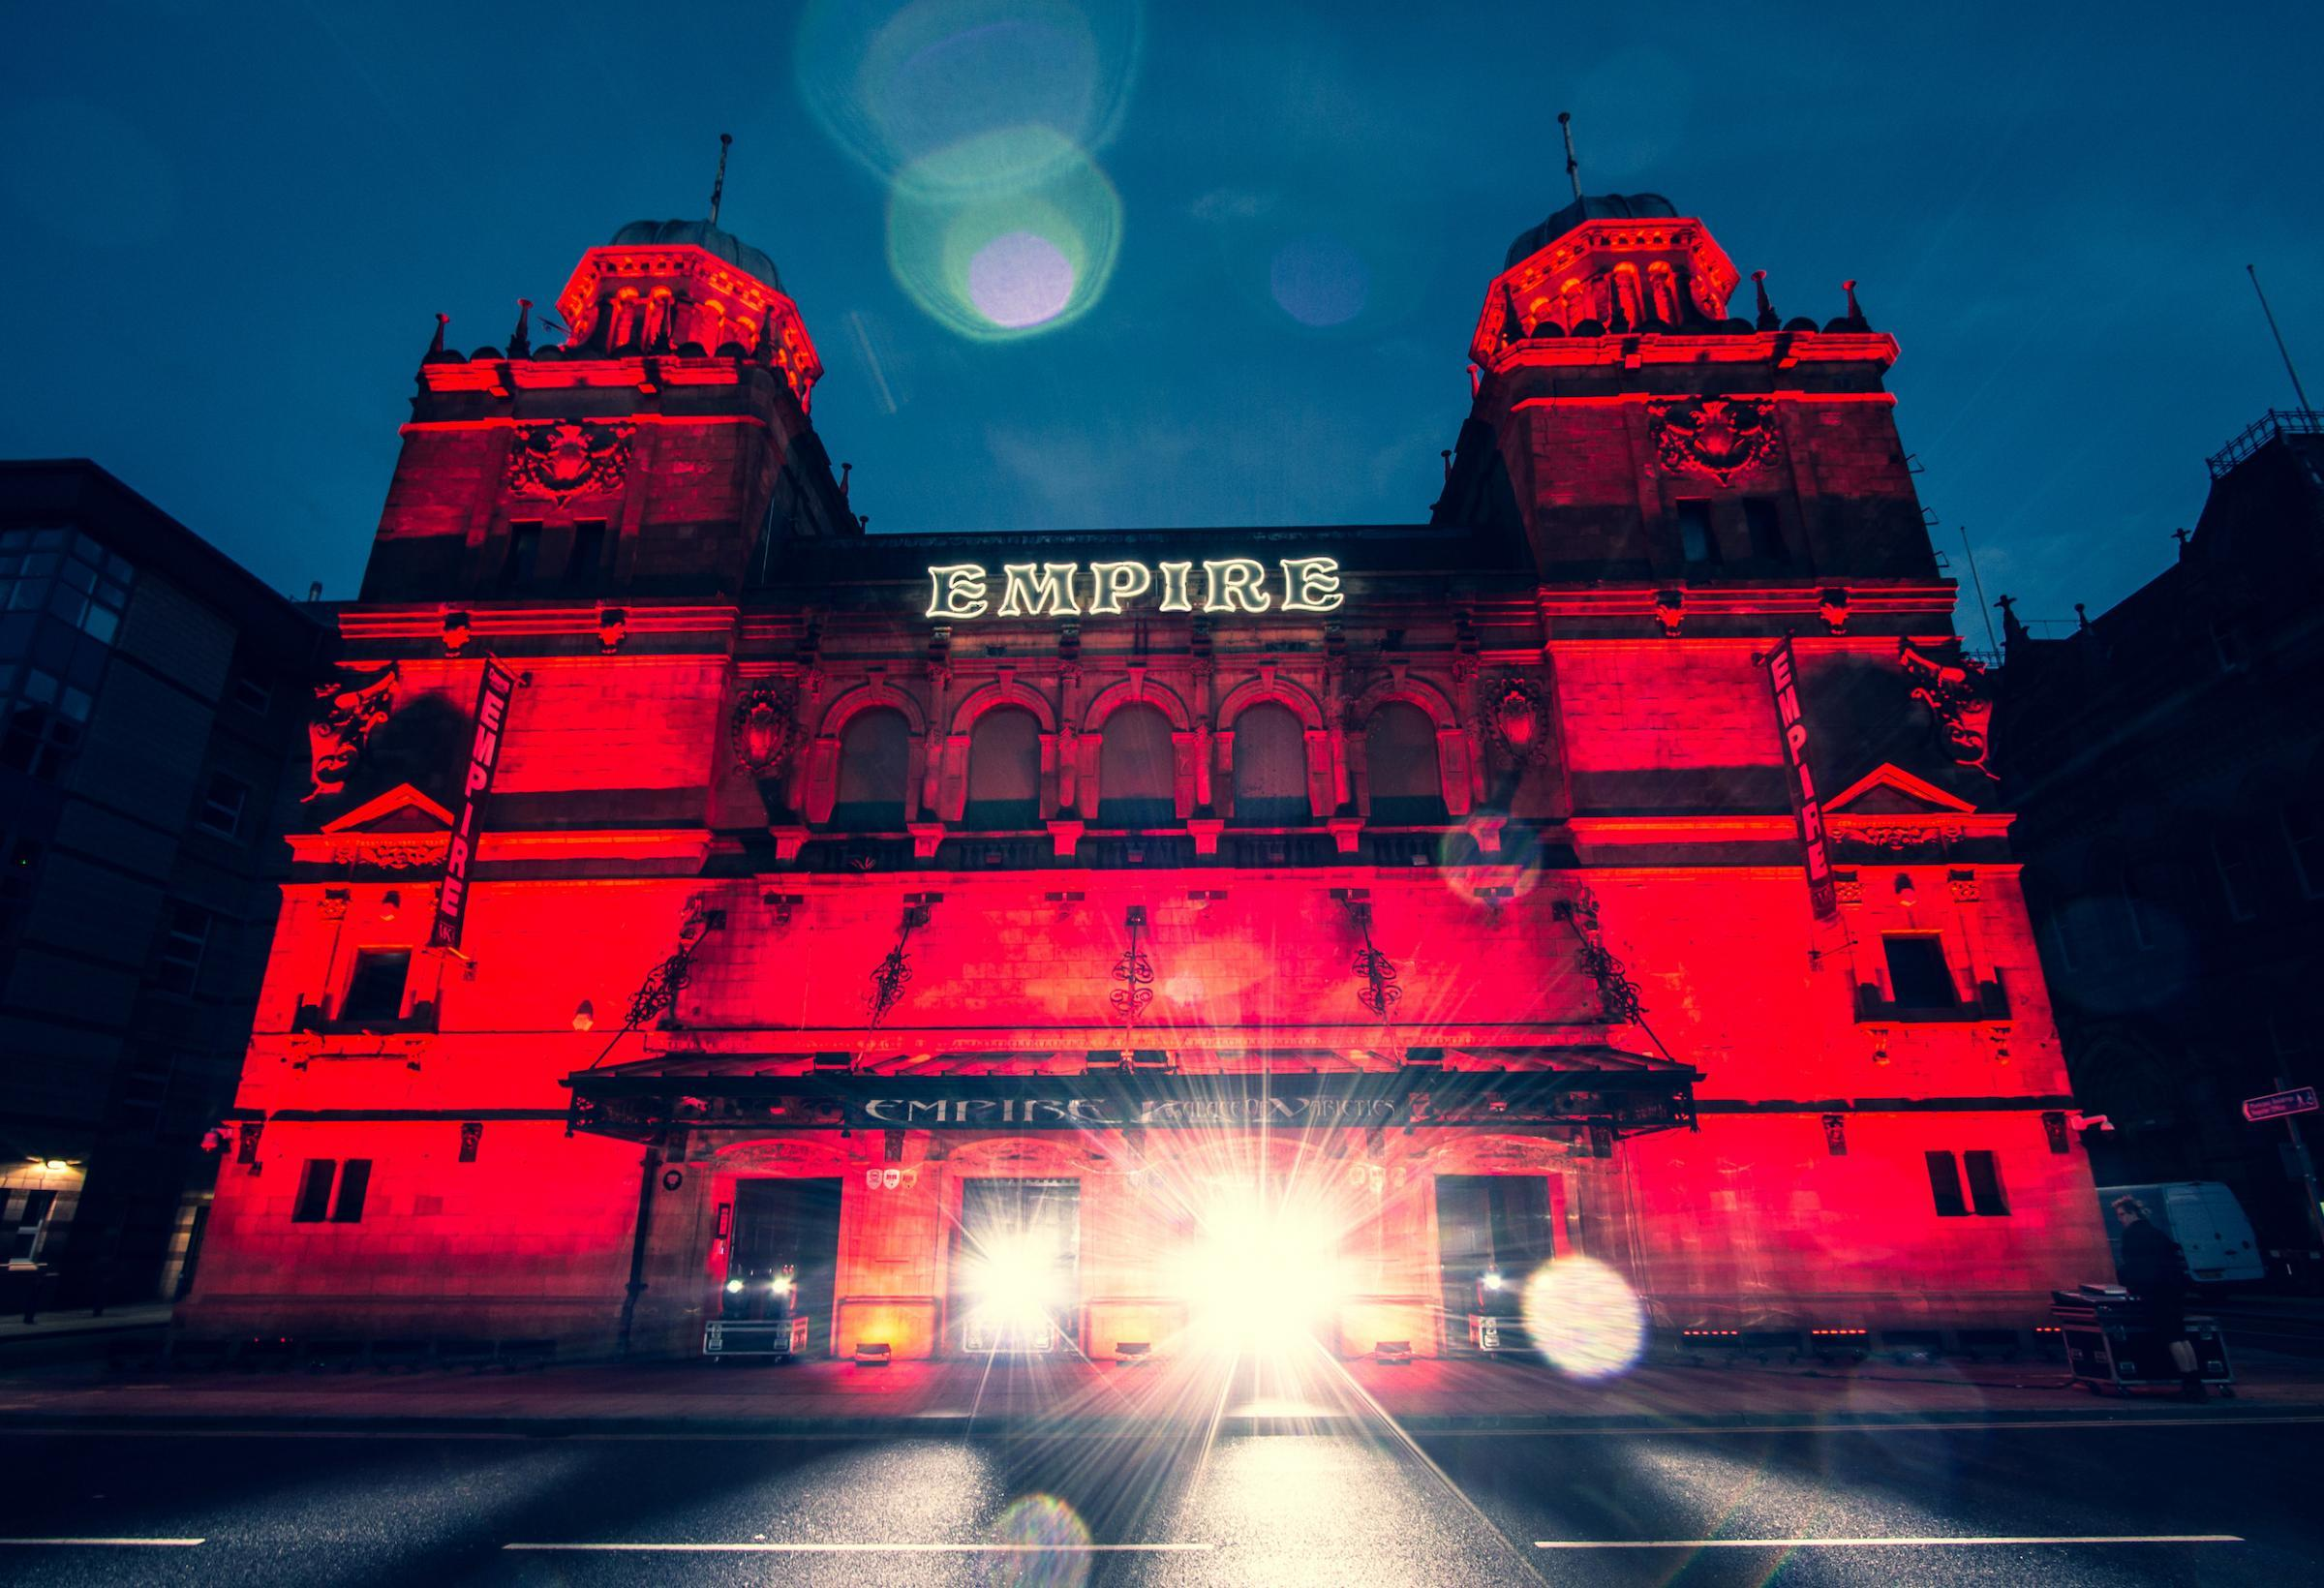 lightitinred campaign sees Middlesbrough Empire lit up | The Northern Echo